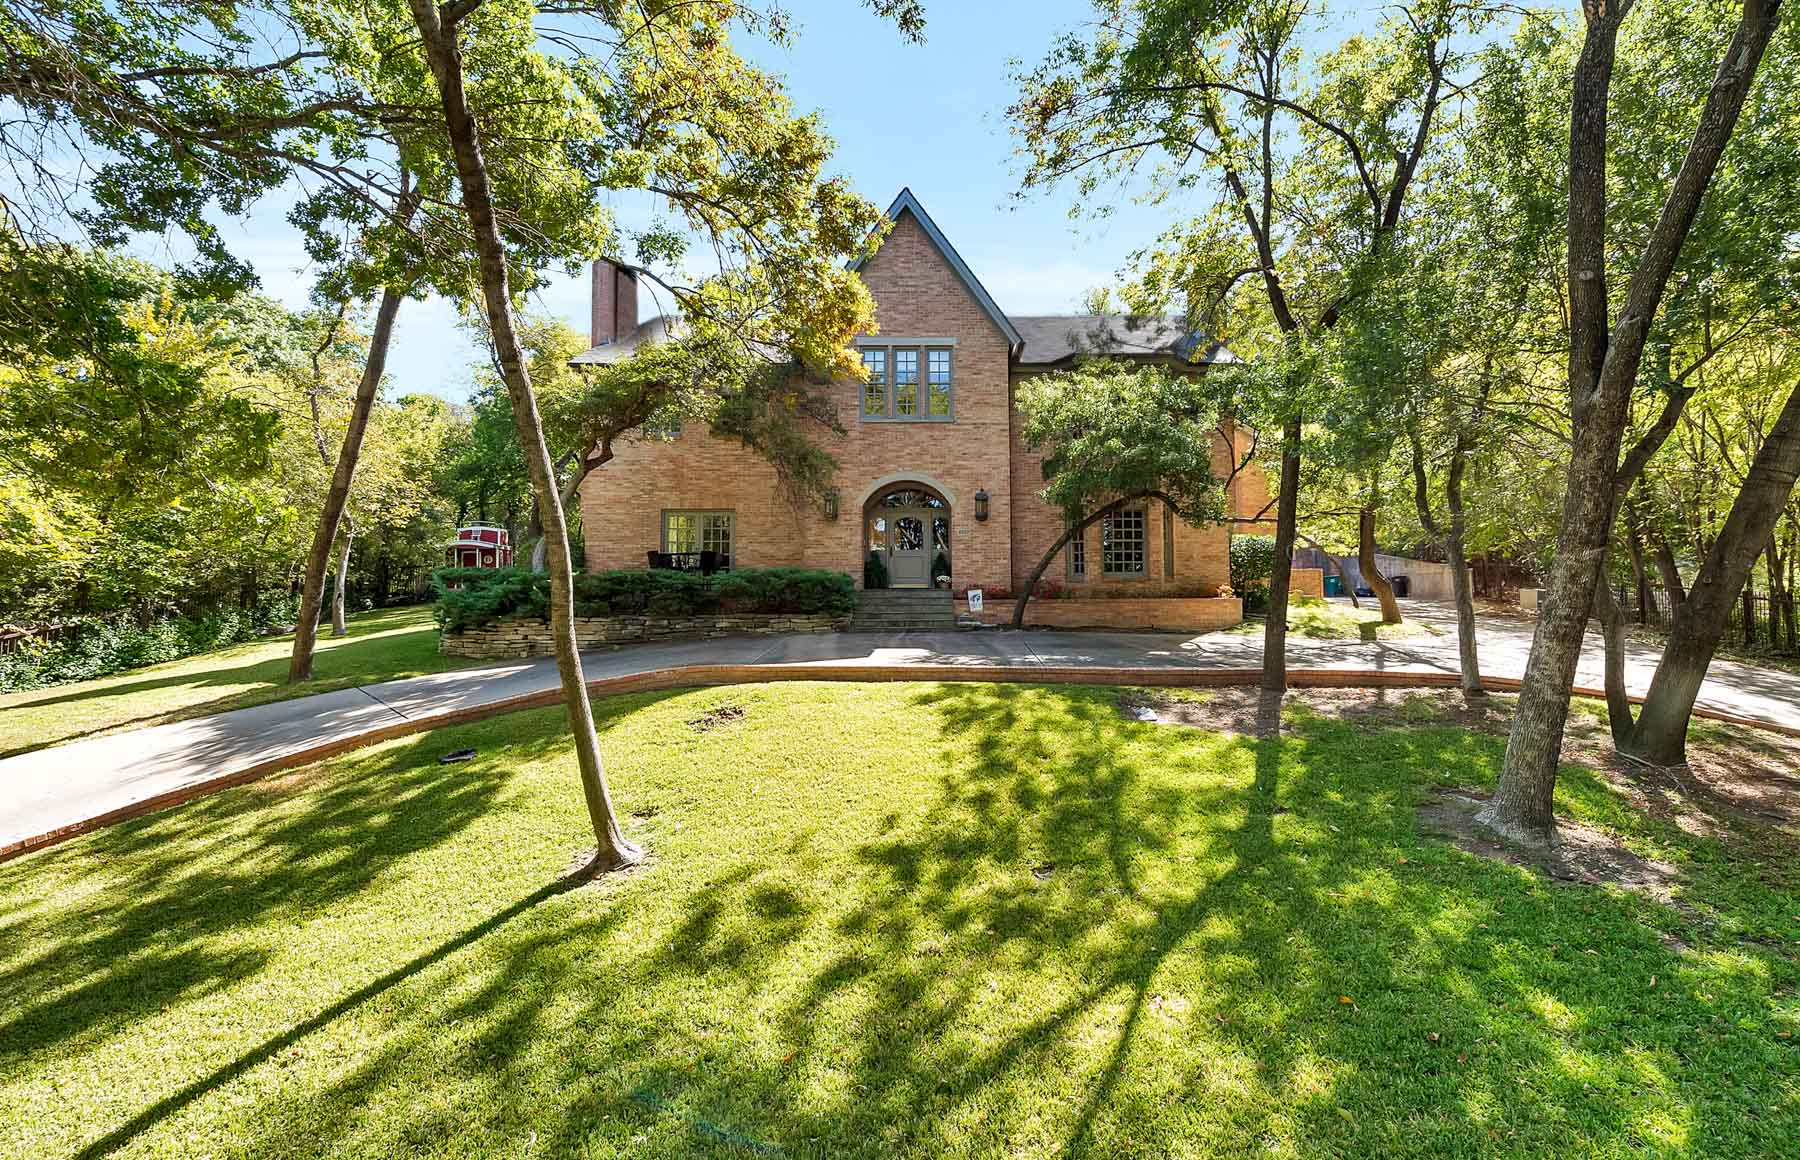 Moradia para Venda às Beautiful Traditional Near Rivercrest 4707 Hidden Lane Fort Worth, Texas 76107 Estados Unidos